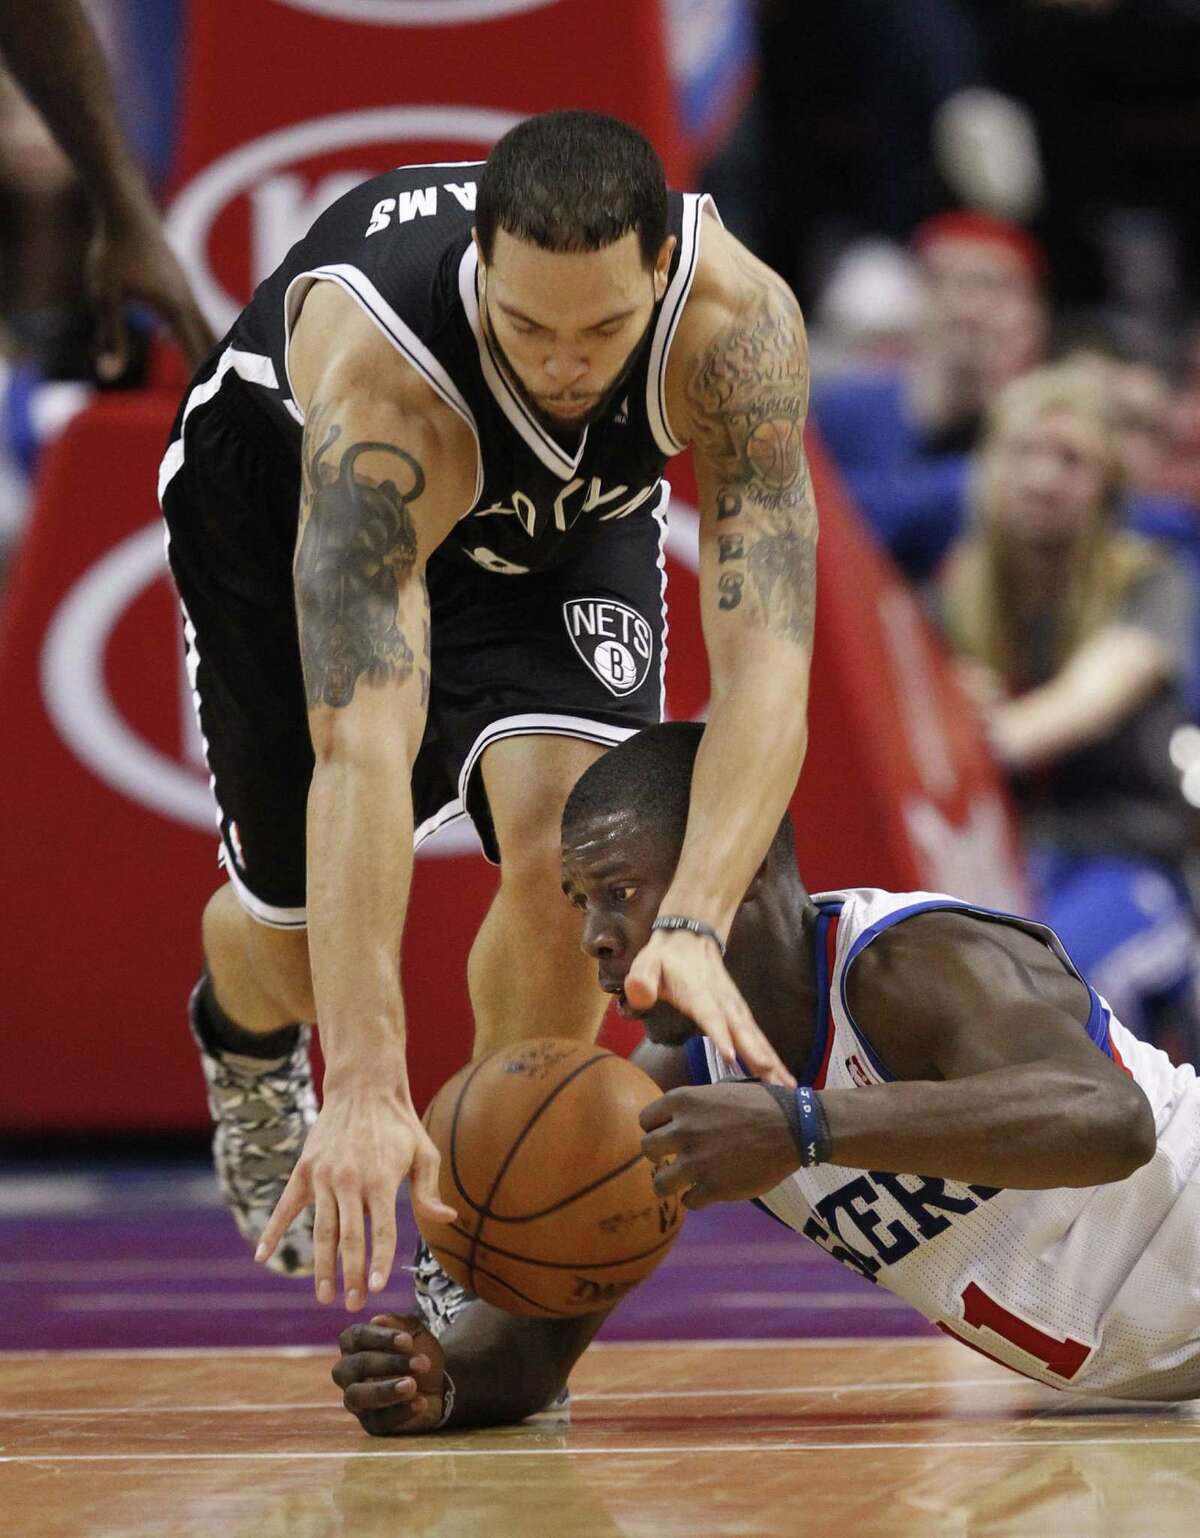 Jrue Holliday (bottom) and Deron Williams fight for the ball in Philadelphia's 106-97 victory.